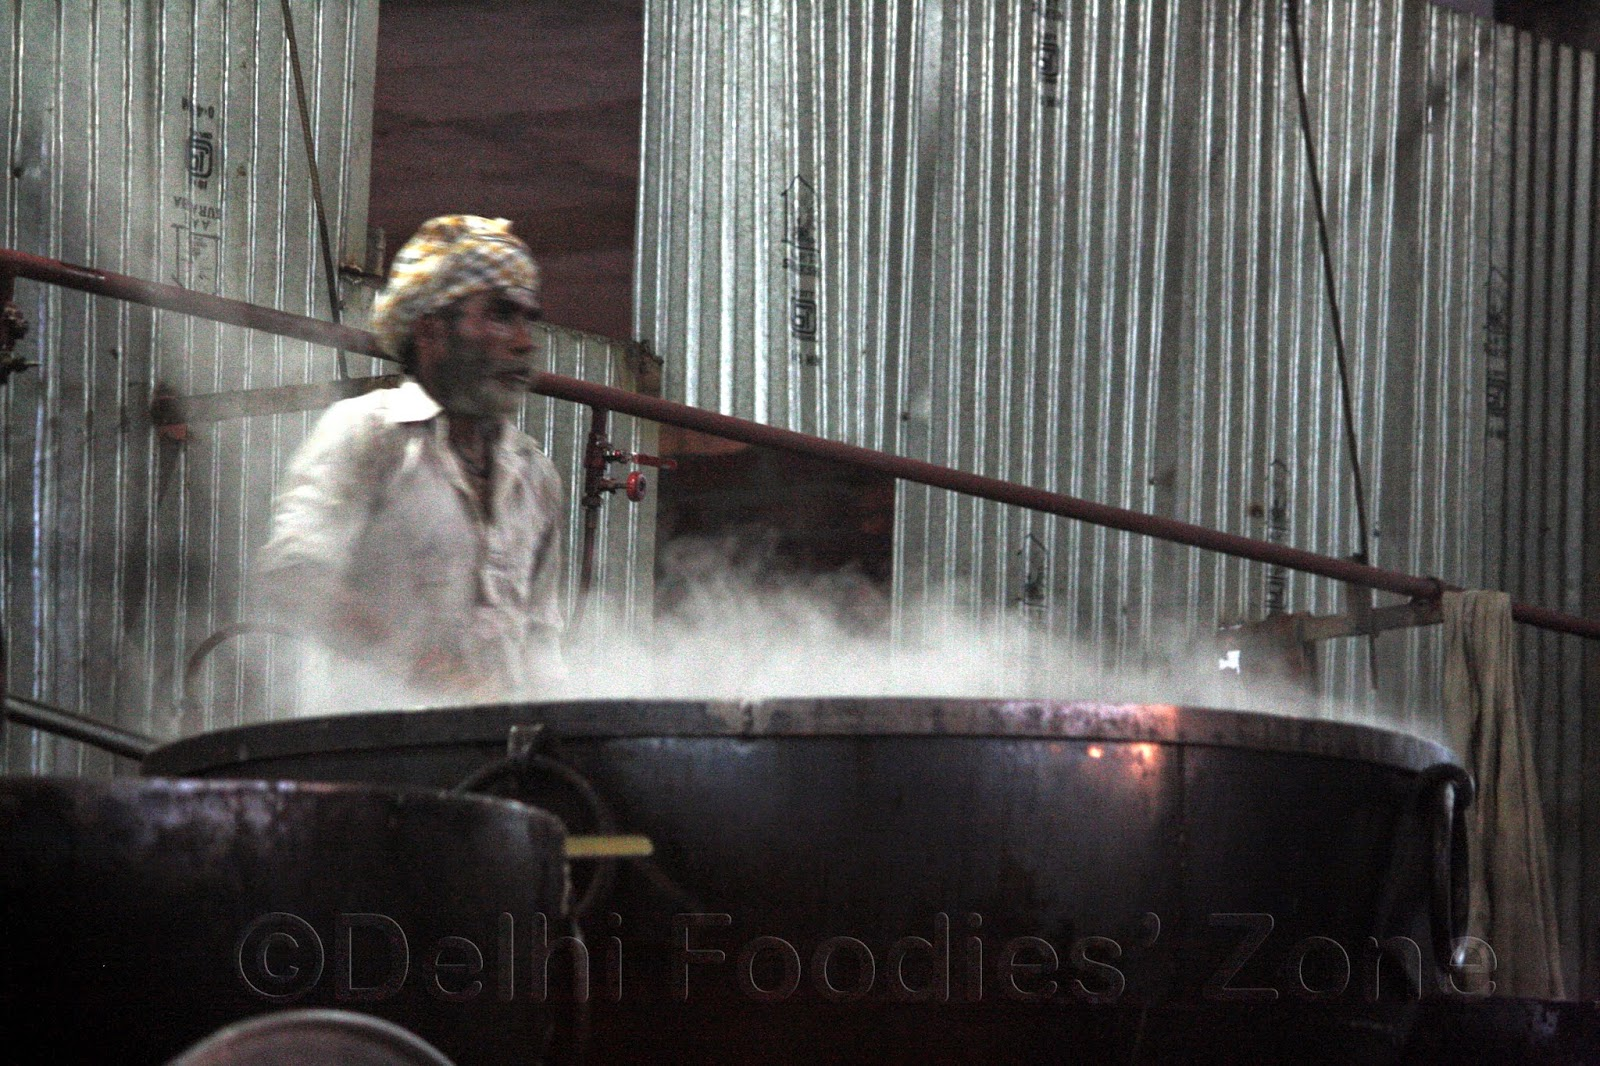 cauldrons, golden temple, food preparation at golden temples